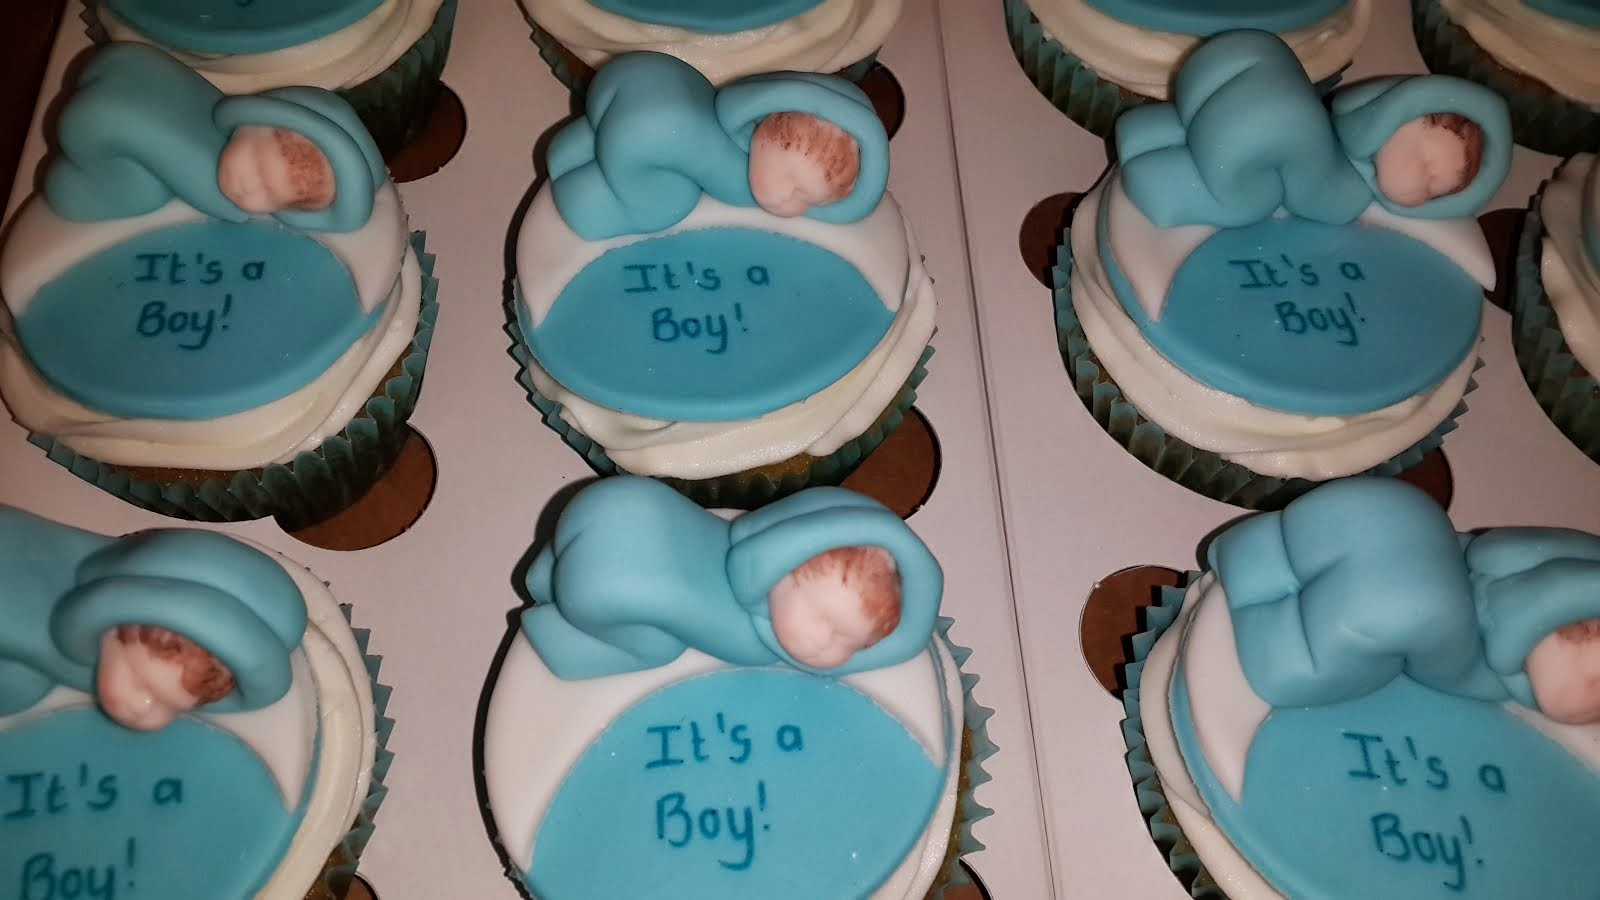 It's a boy - baby cupcakes